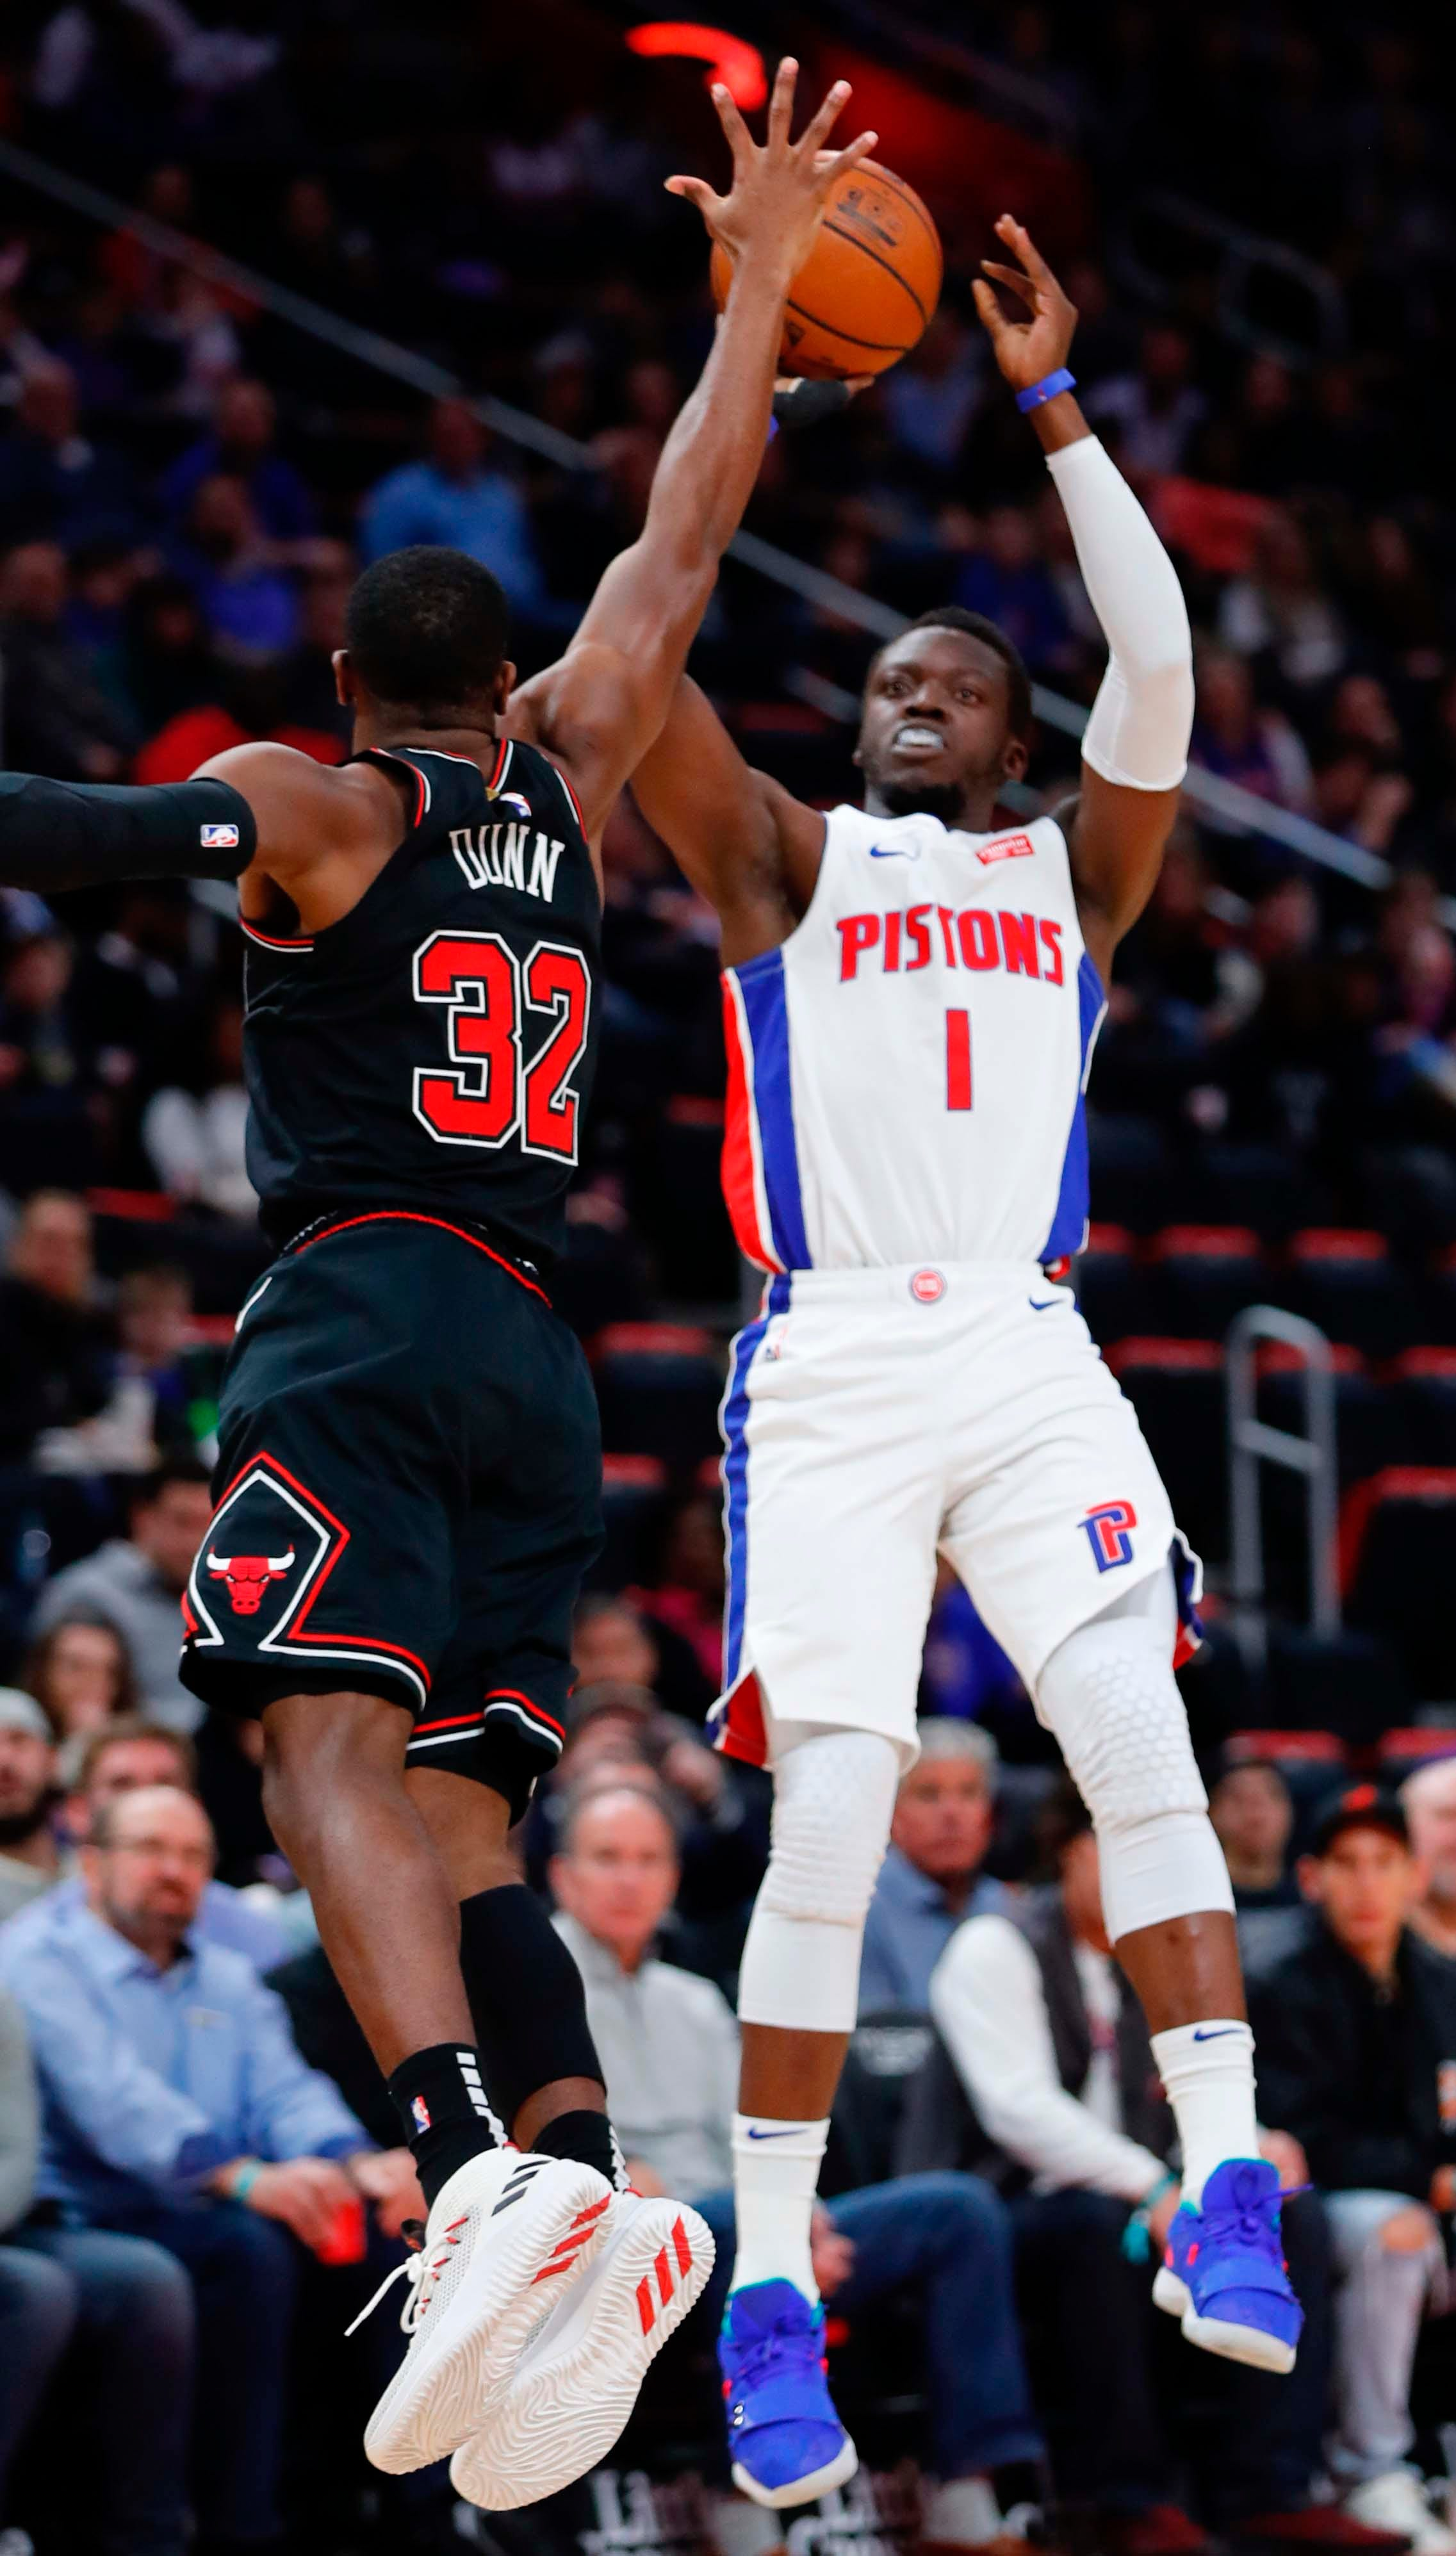 Pistons guard Reggie Jackson shoots on Bulls guard Kris Dunn in the first half on Sunday, March 10, 2019, at Little Caesars Arena.